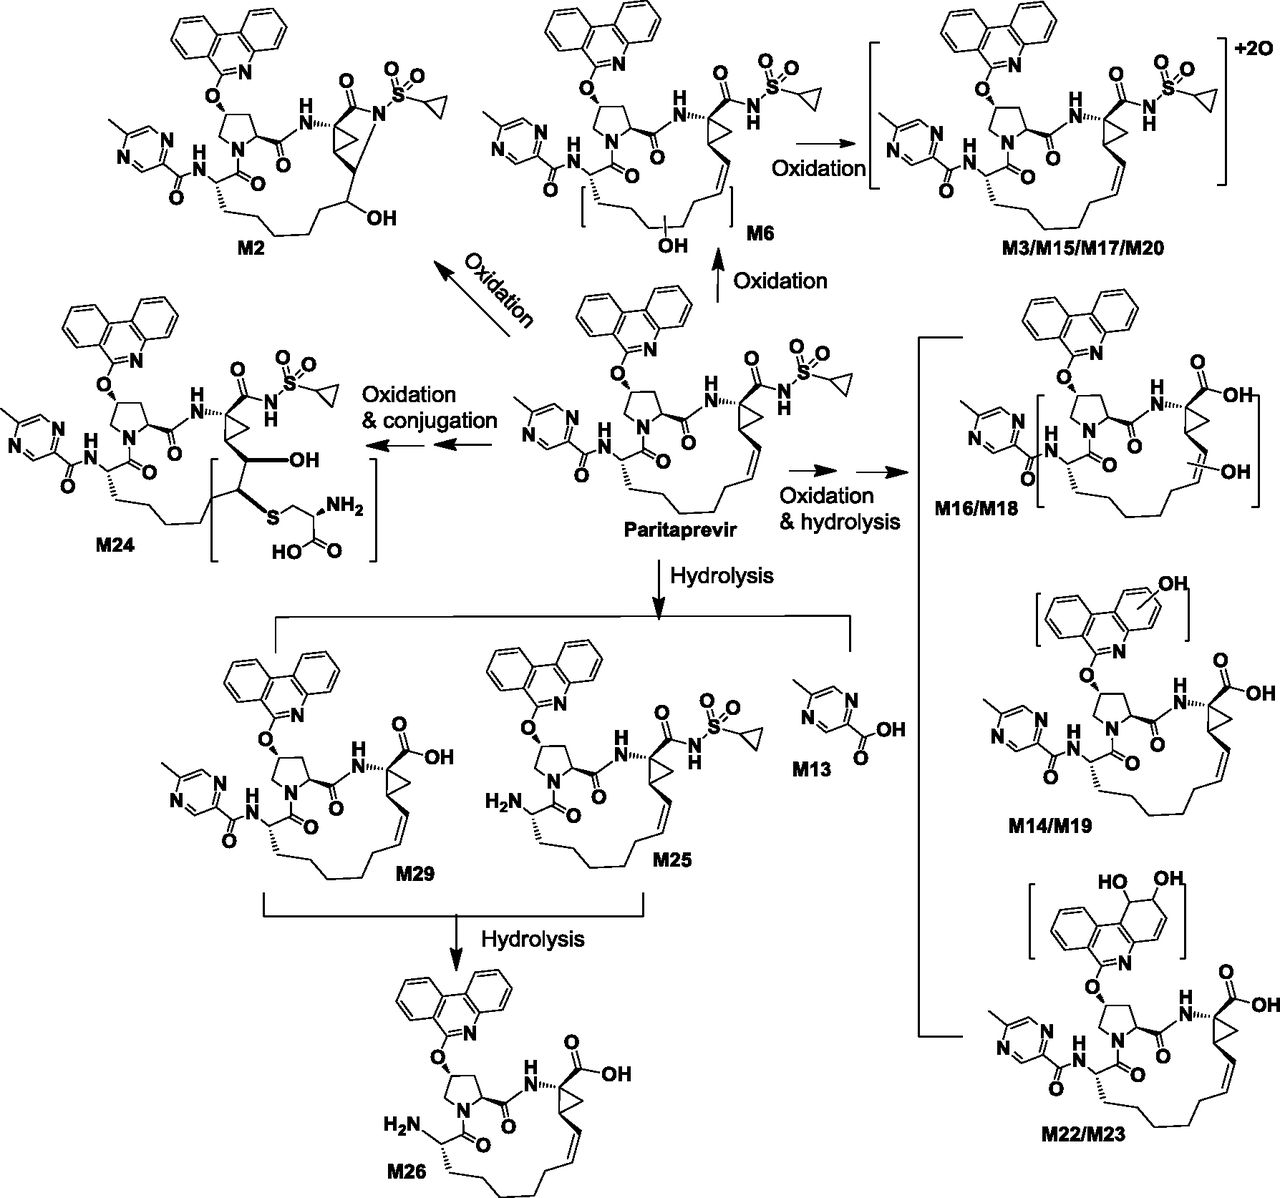 Metabolism and Disposition of the Hepatitis C Protease Inhibitor